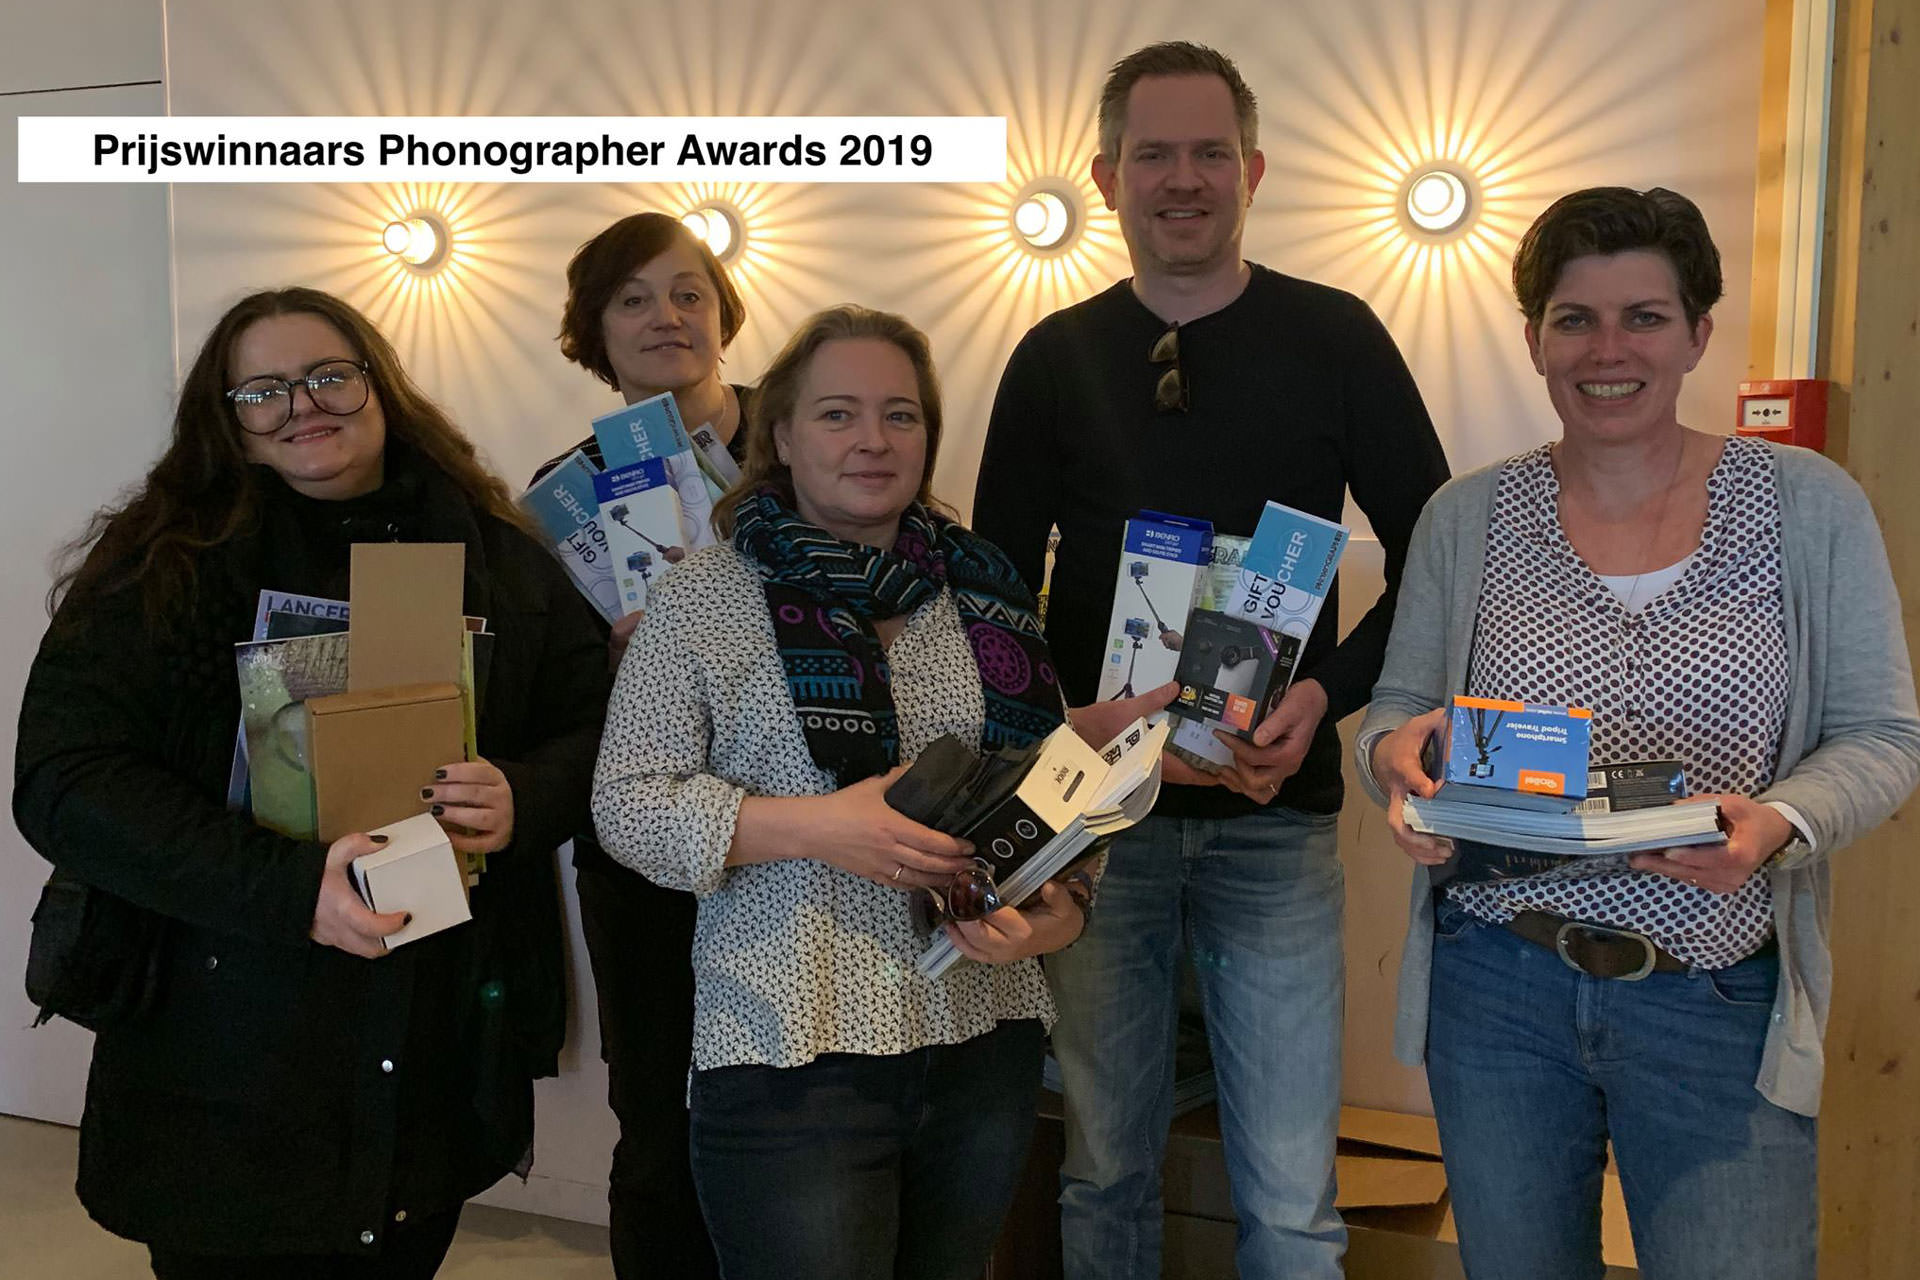 Phonographer Awards 2019 & Mobile Creators